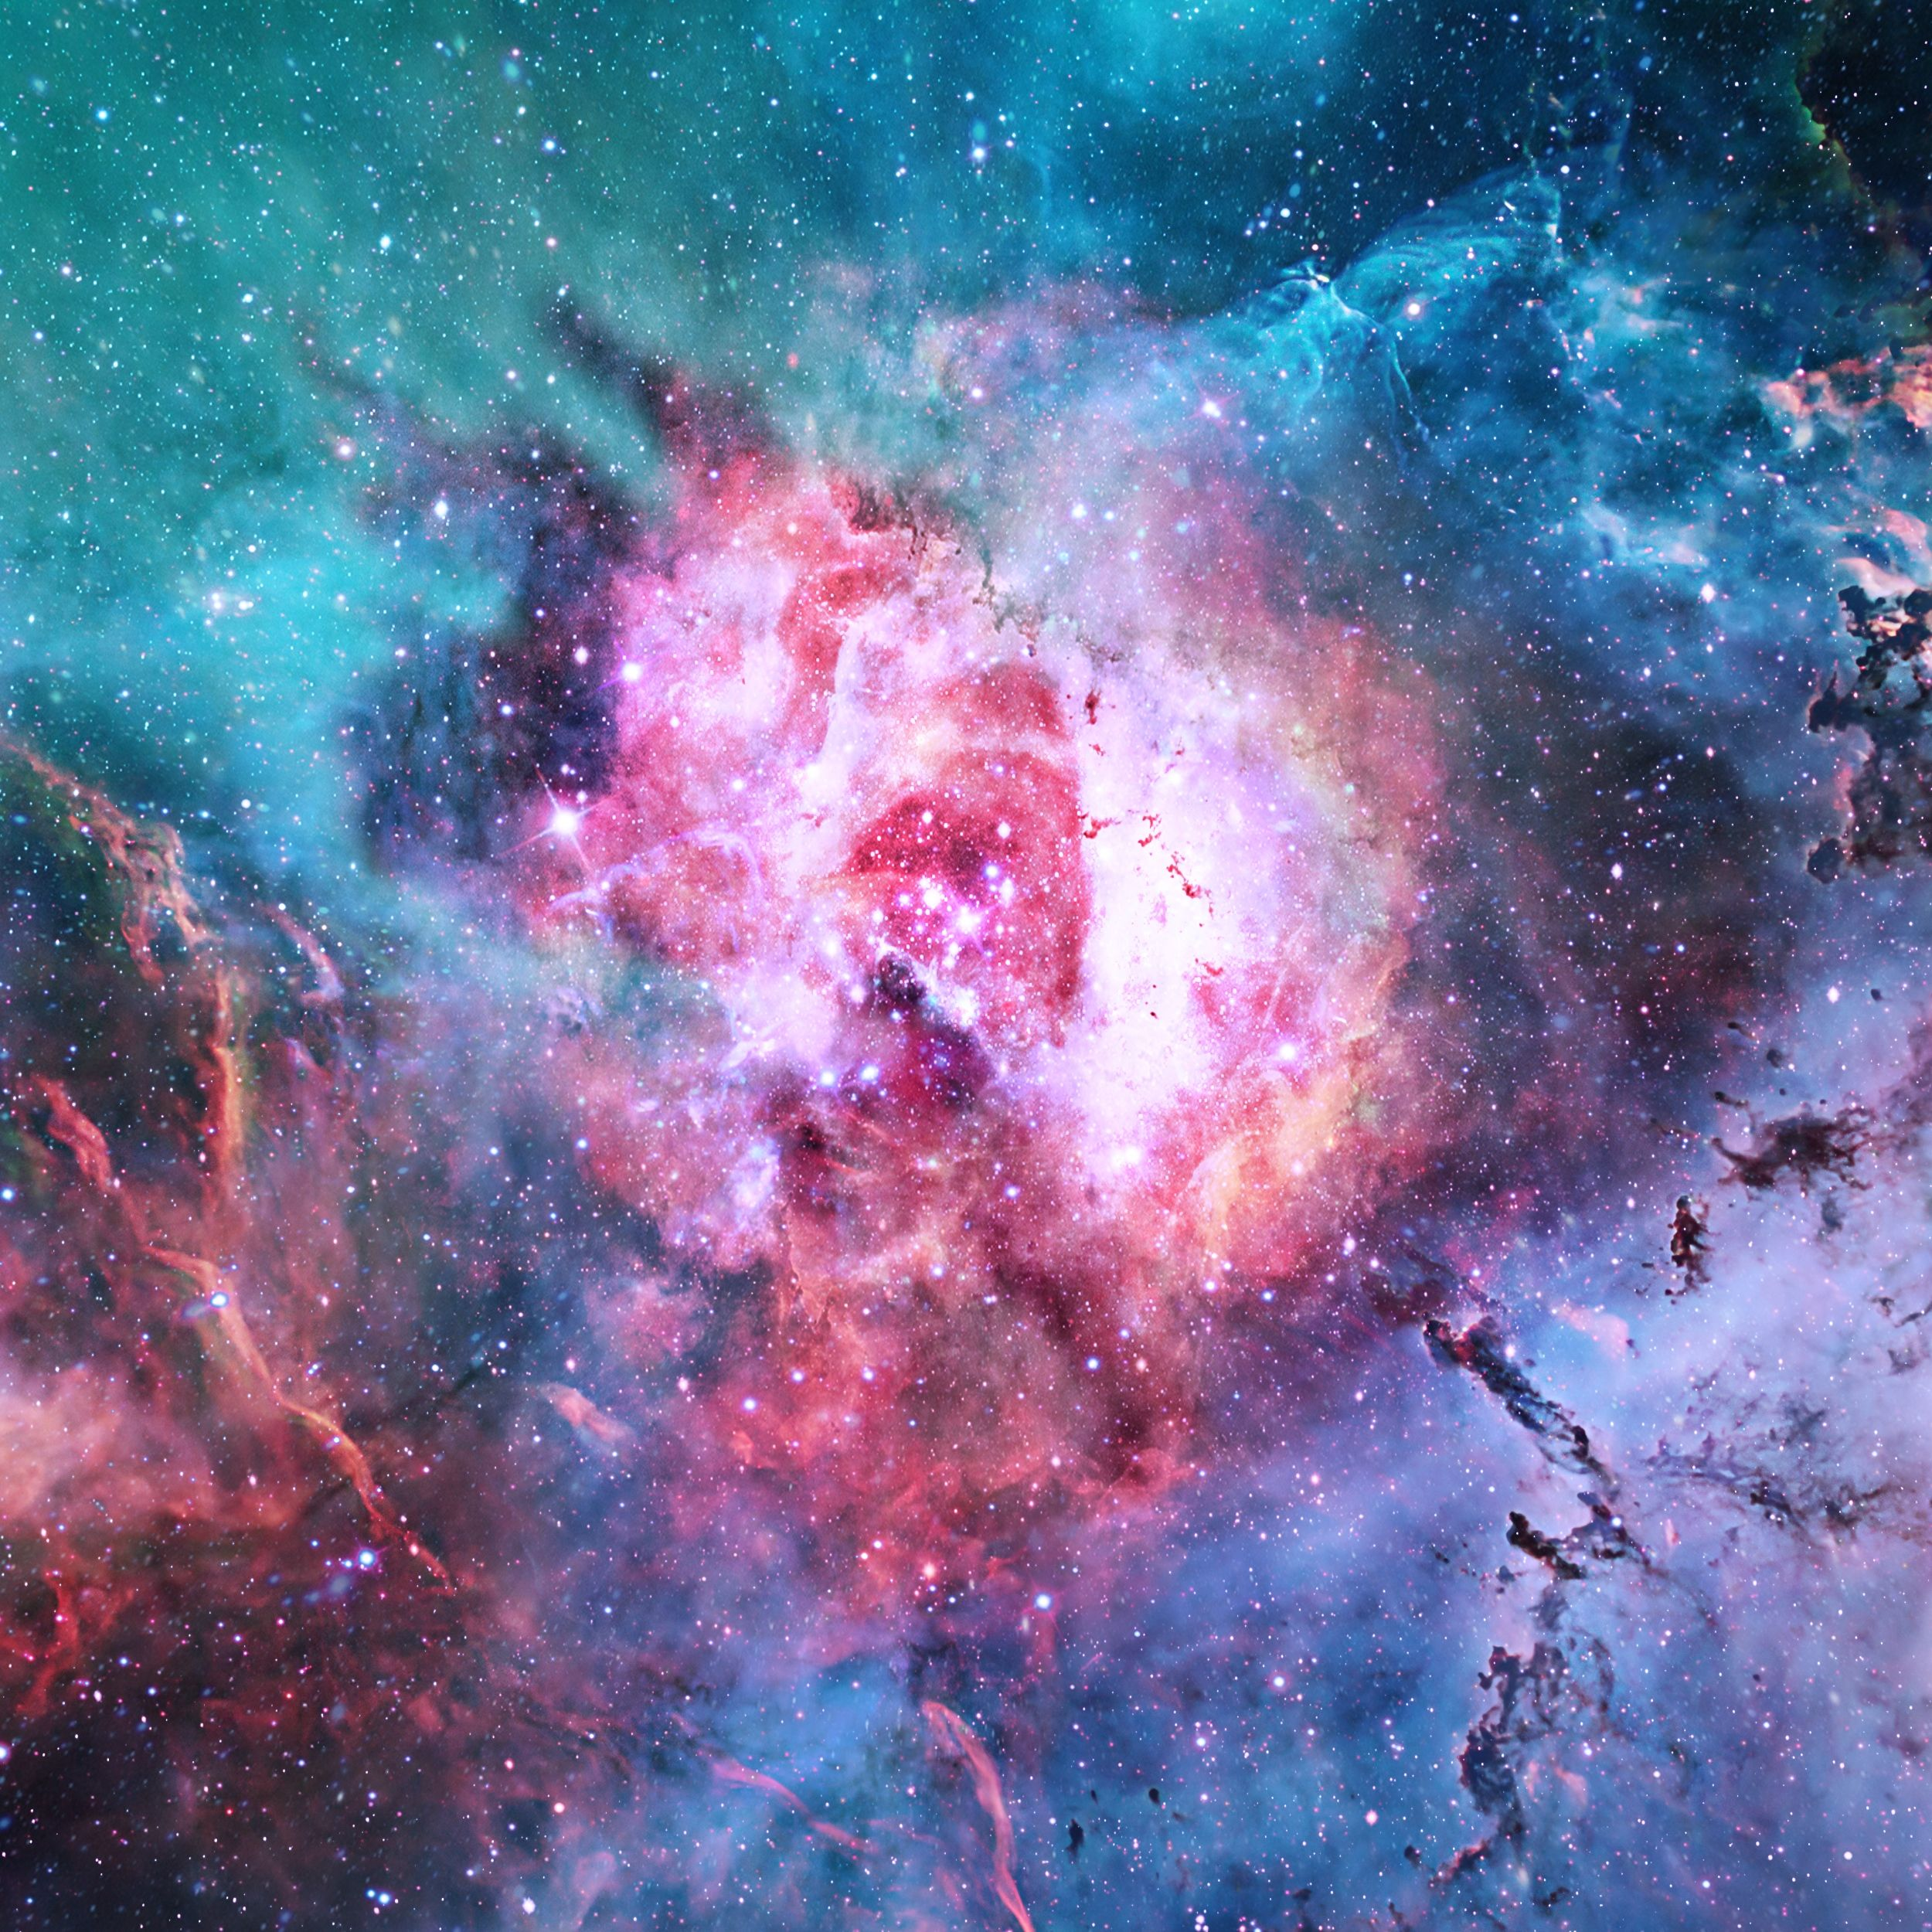 cosmos space - Google Search (With images) | Galaxy ...